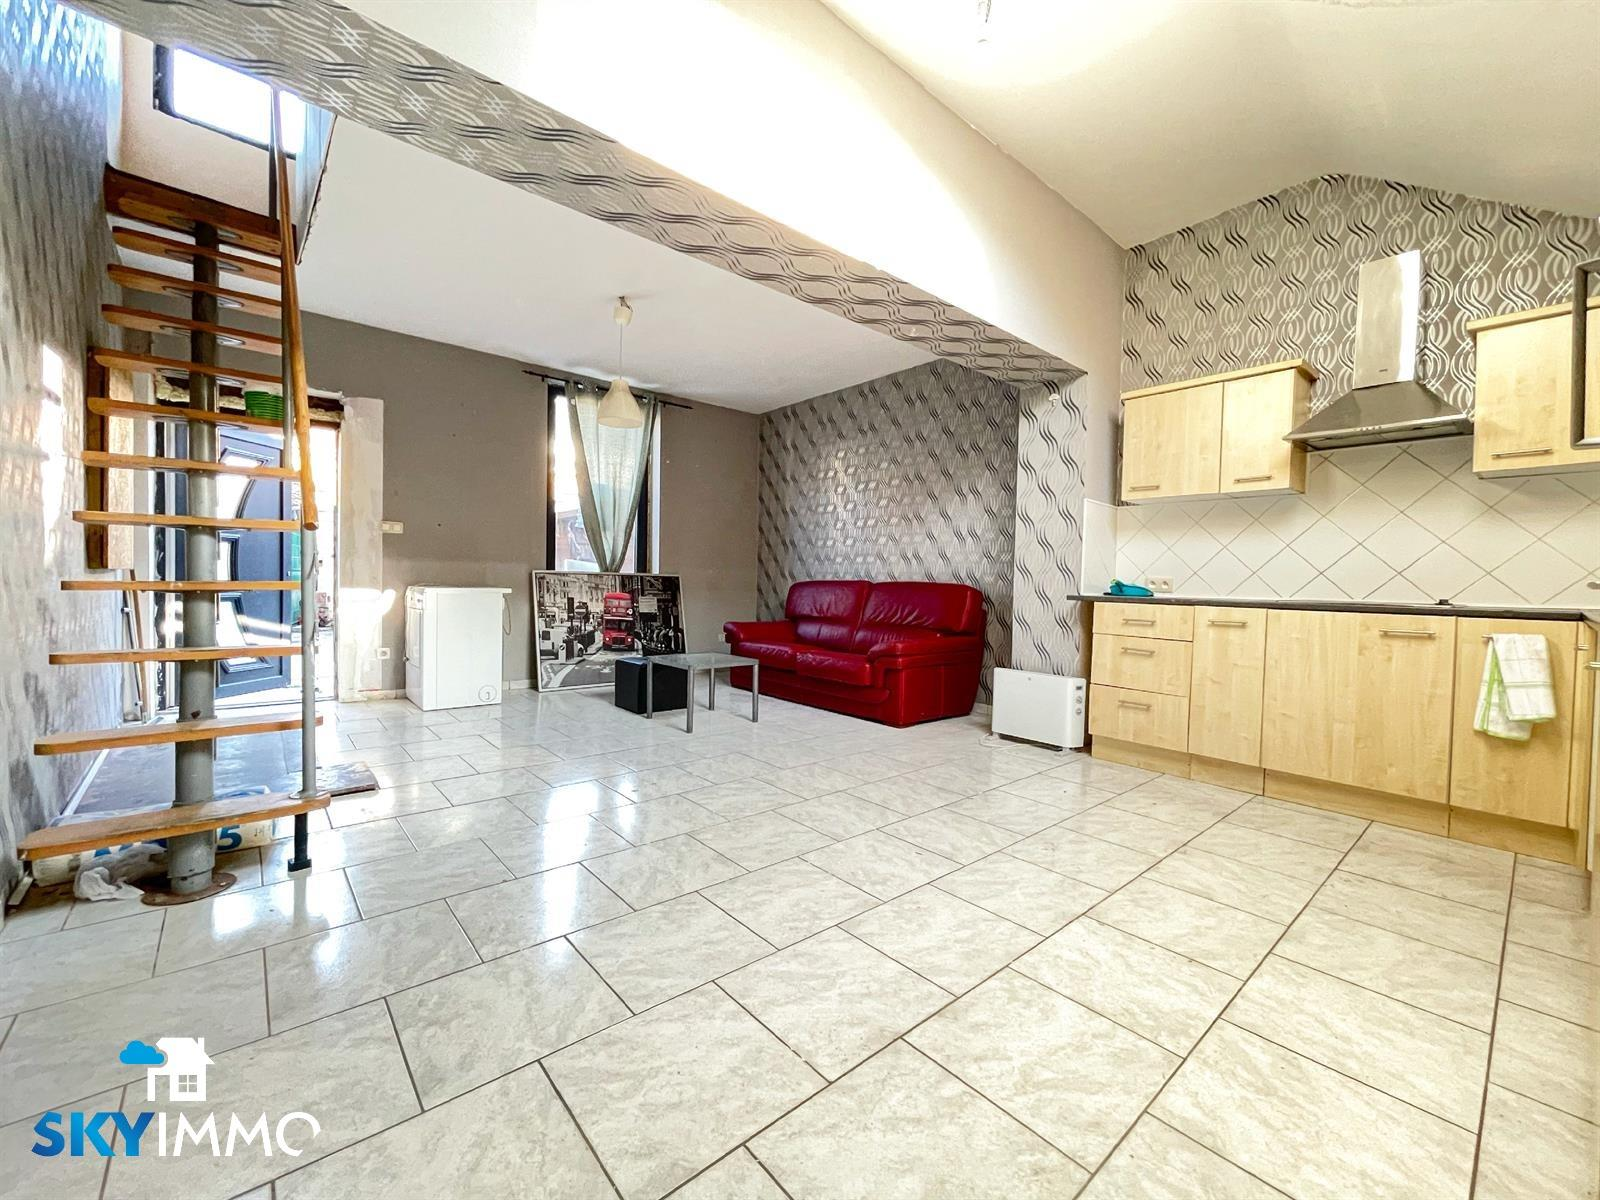 Huis - Flemalle - #4421147-3